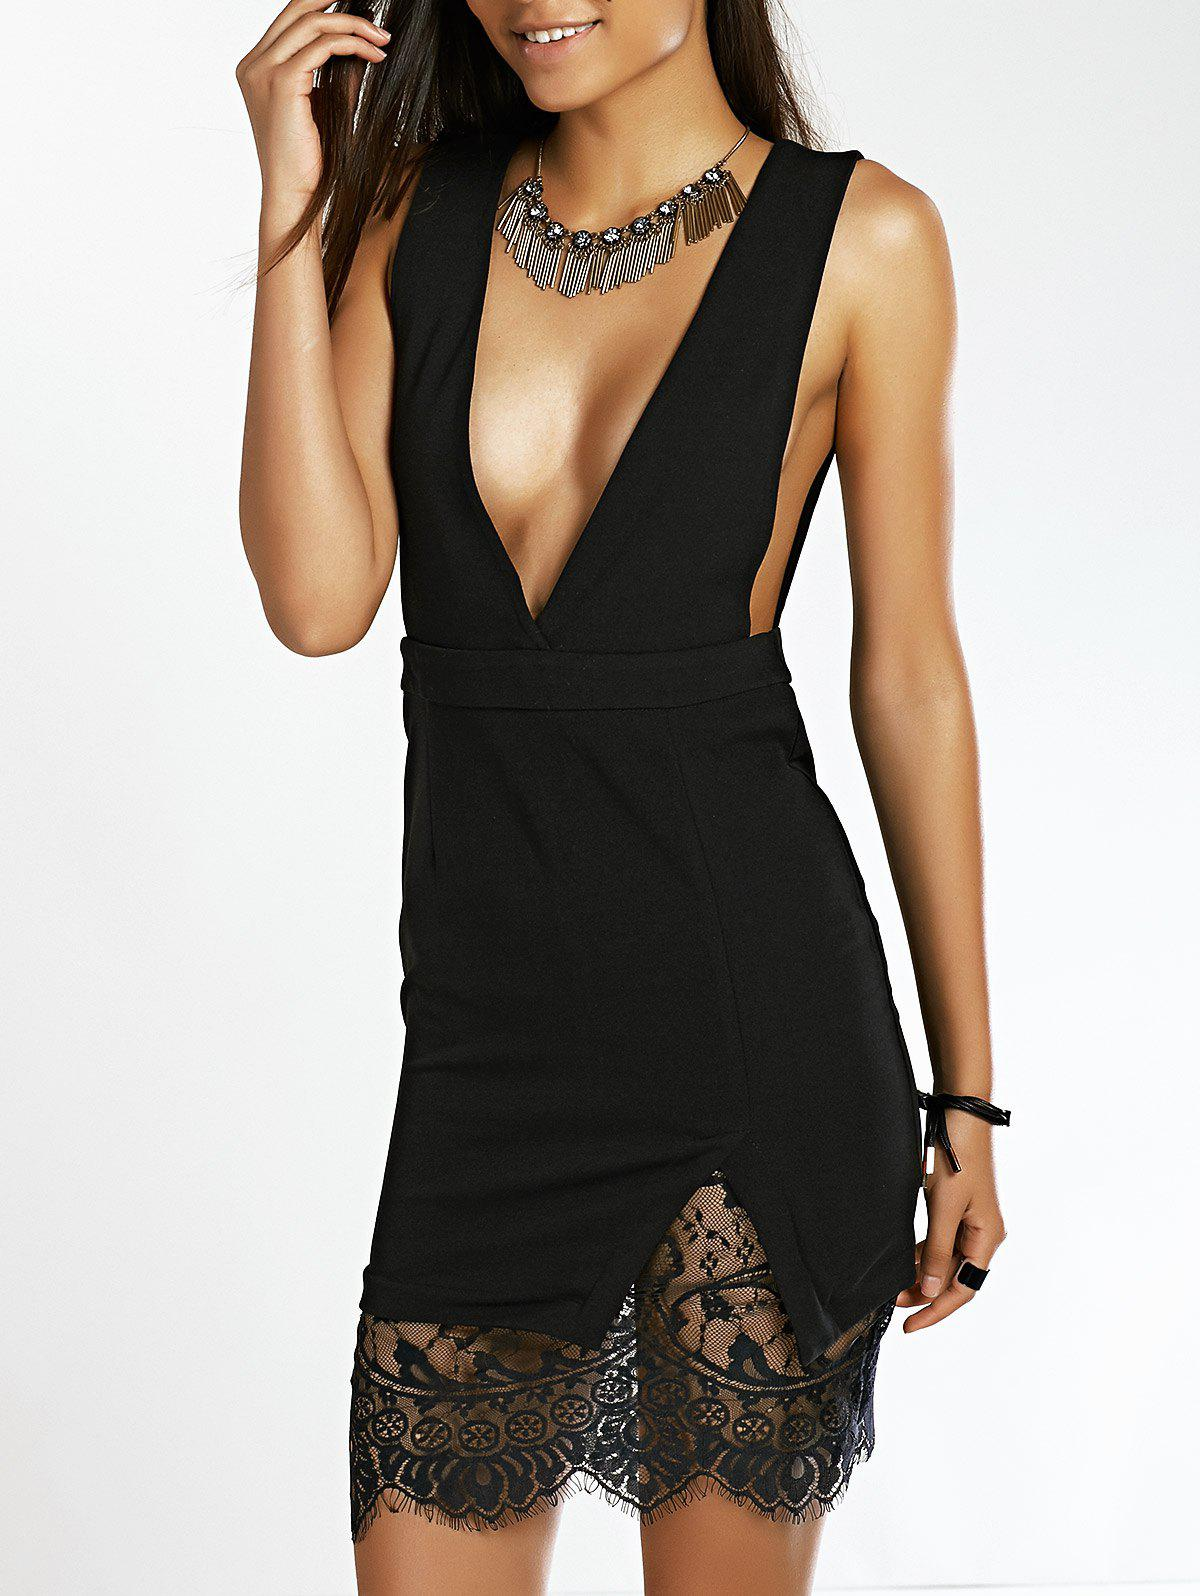 Stylish Women's Plunging Neck Lace Splicing Backless Dress